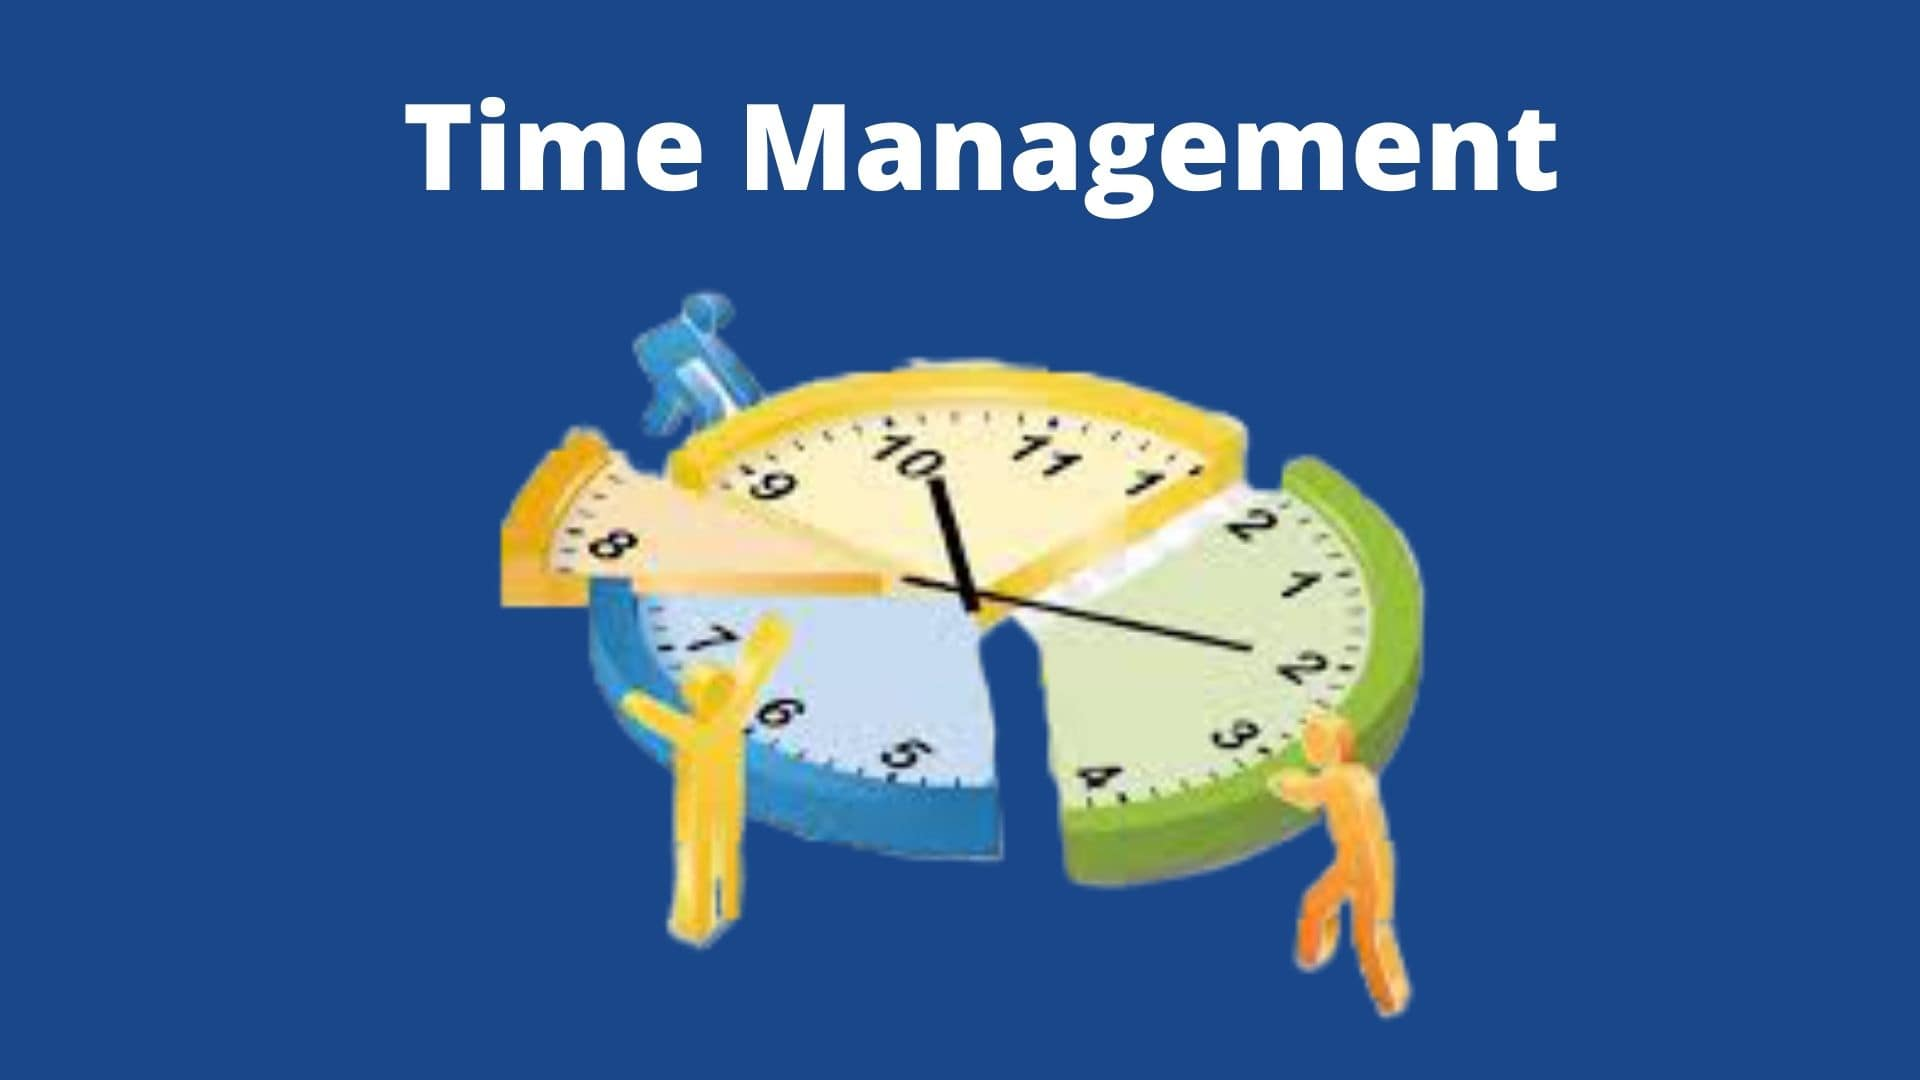 Consulting Business - Time Management